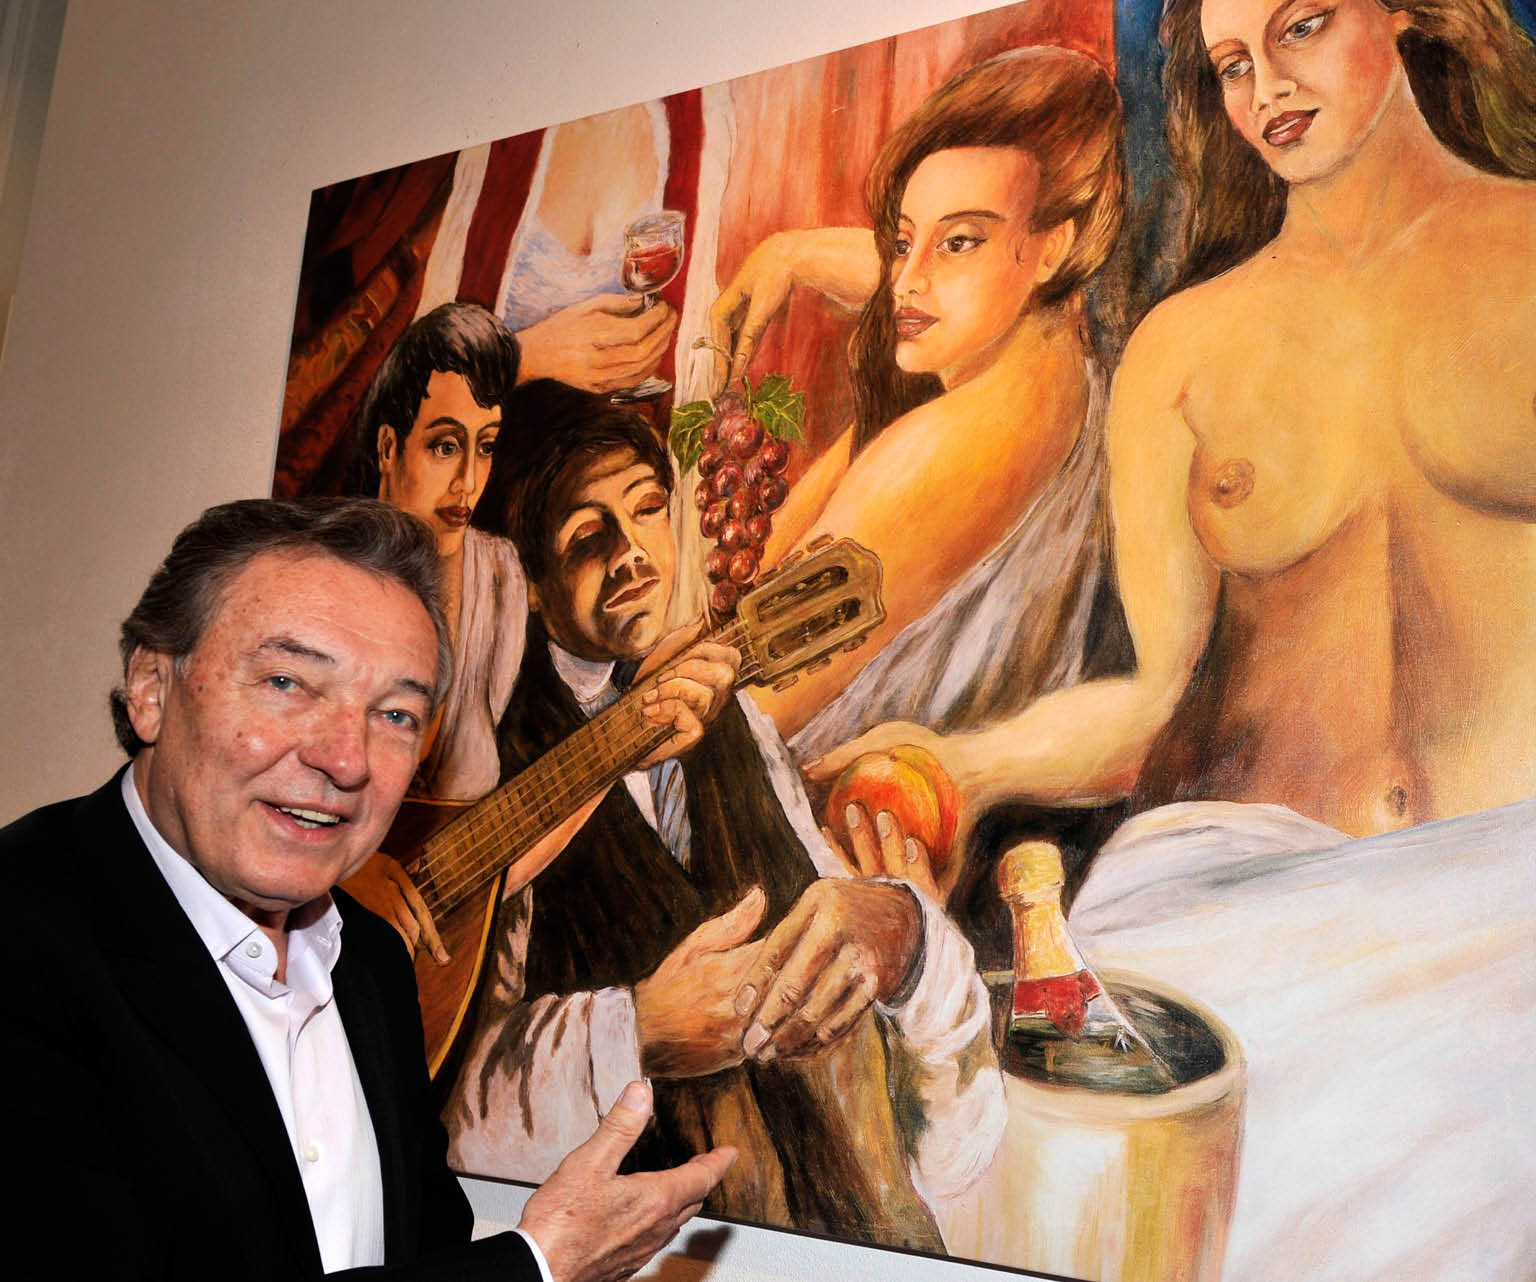 epa02140236 Czech singer Karel Gott poses for photographs in front of his painting entitled 'Sleep, give us a dream' (1999) from his private collection at Mensing Gallery in Munich, Germany, 02 May 2010. The exhibit 'Karel Gott, painter' runs until 10 May 2010.  EPA/URSULA DUEREN